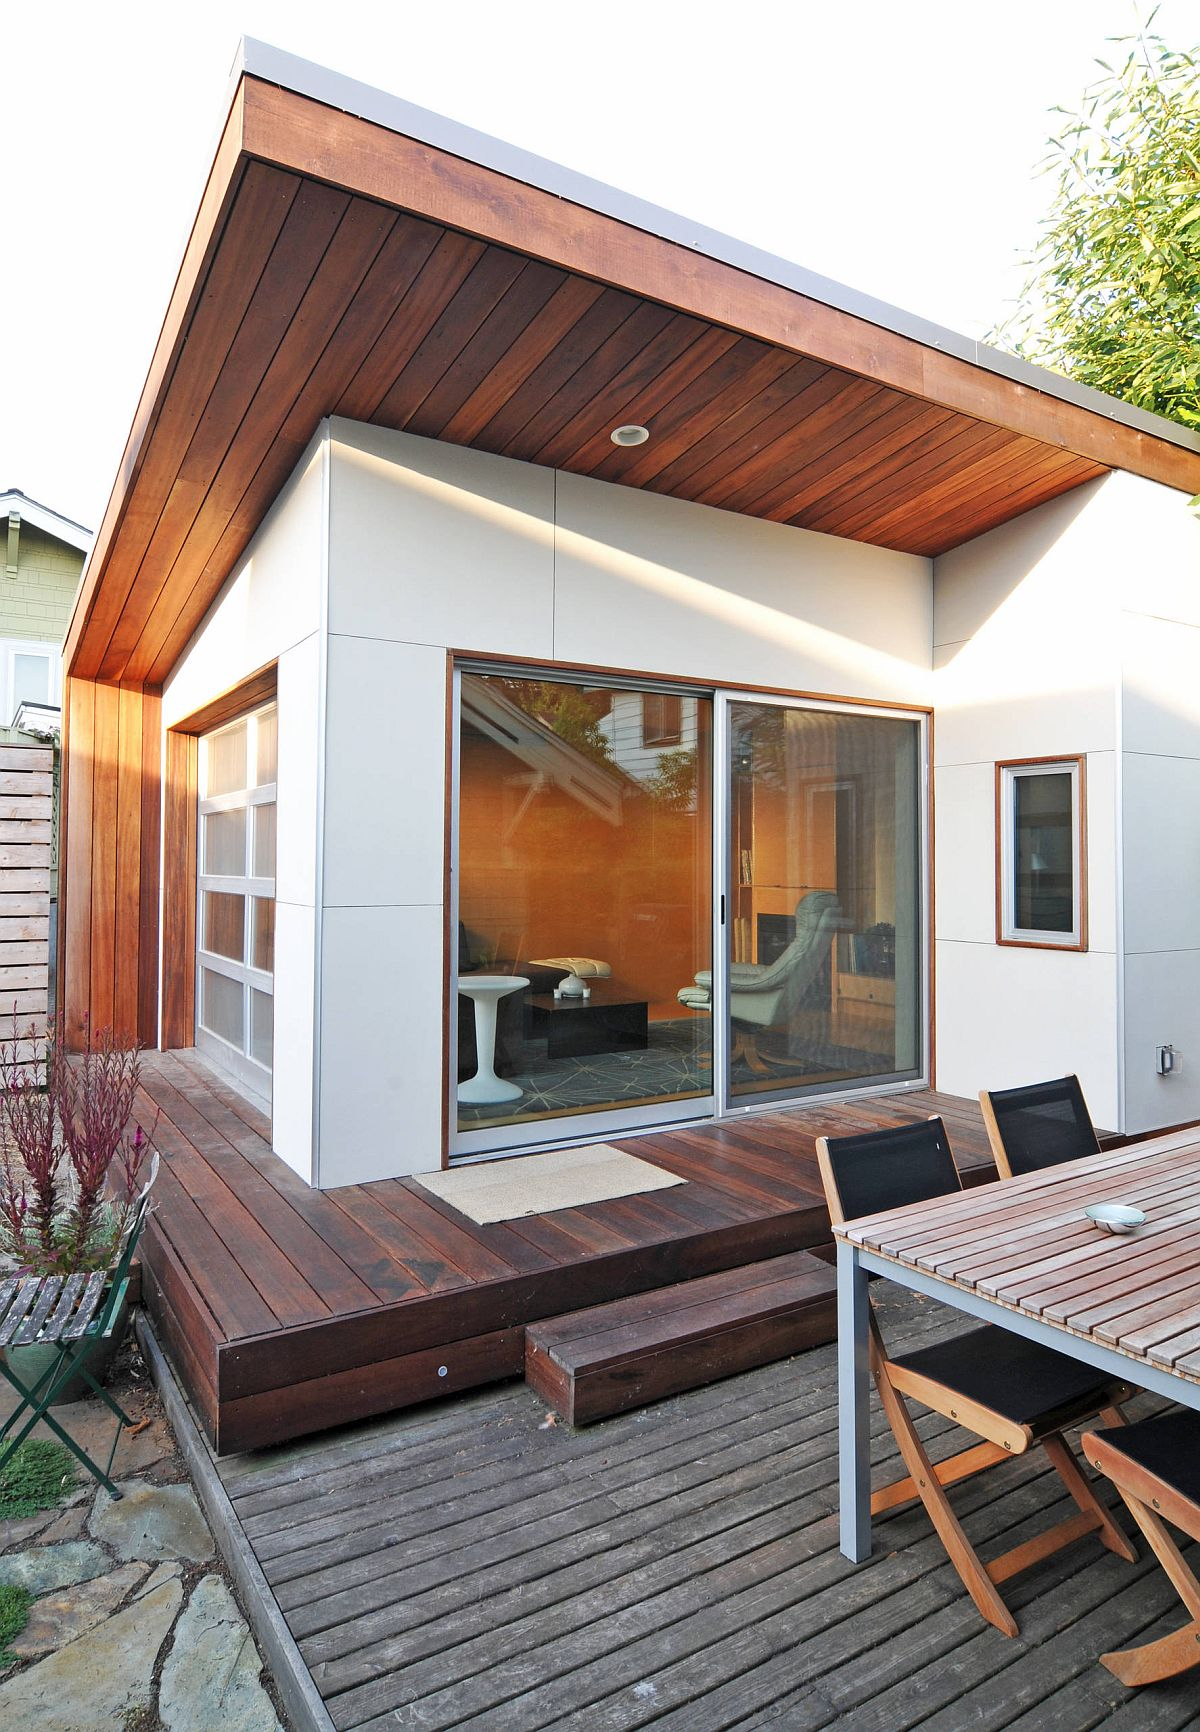 Backyard-office-is-also-a-wonderful-little-refuge-when-you-need-it-to-be-35680